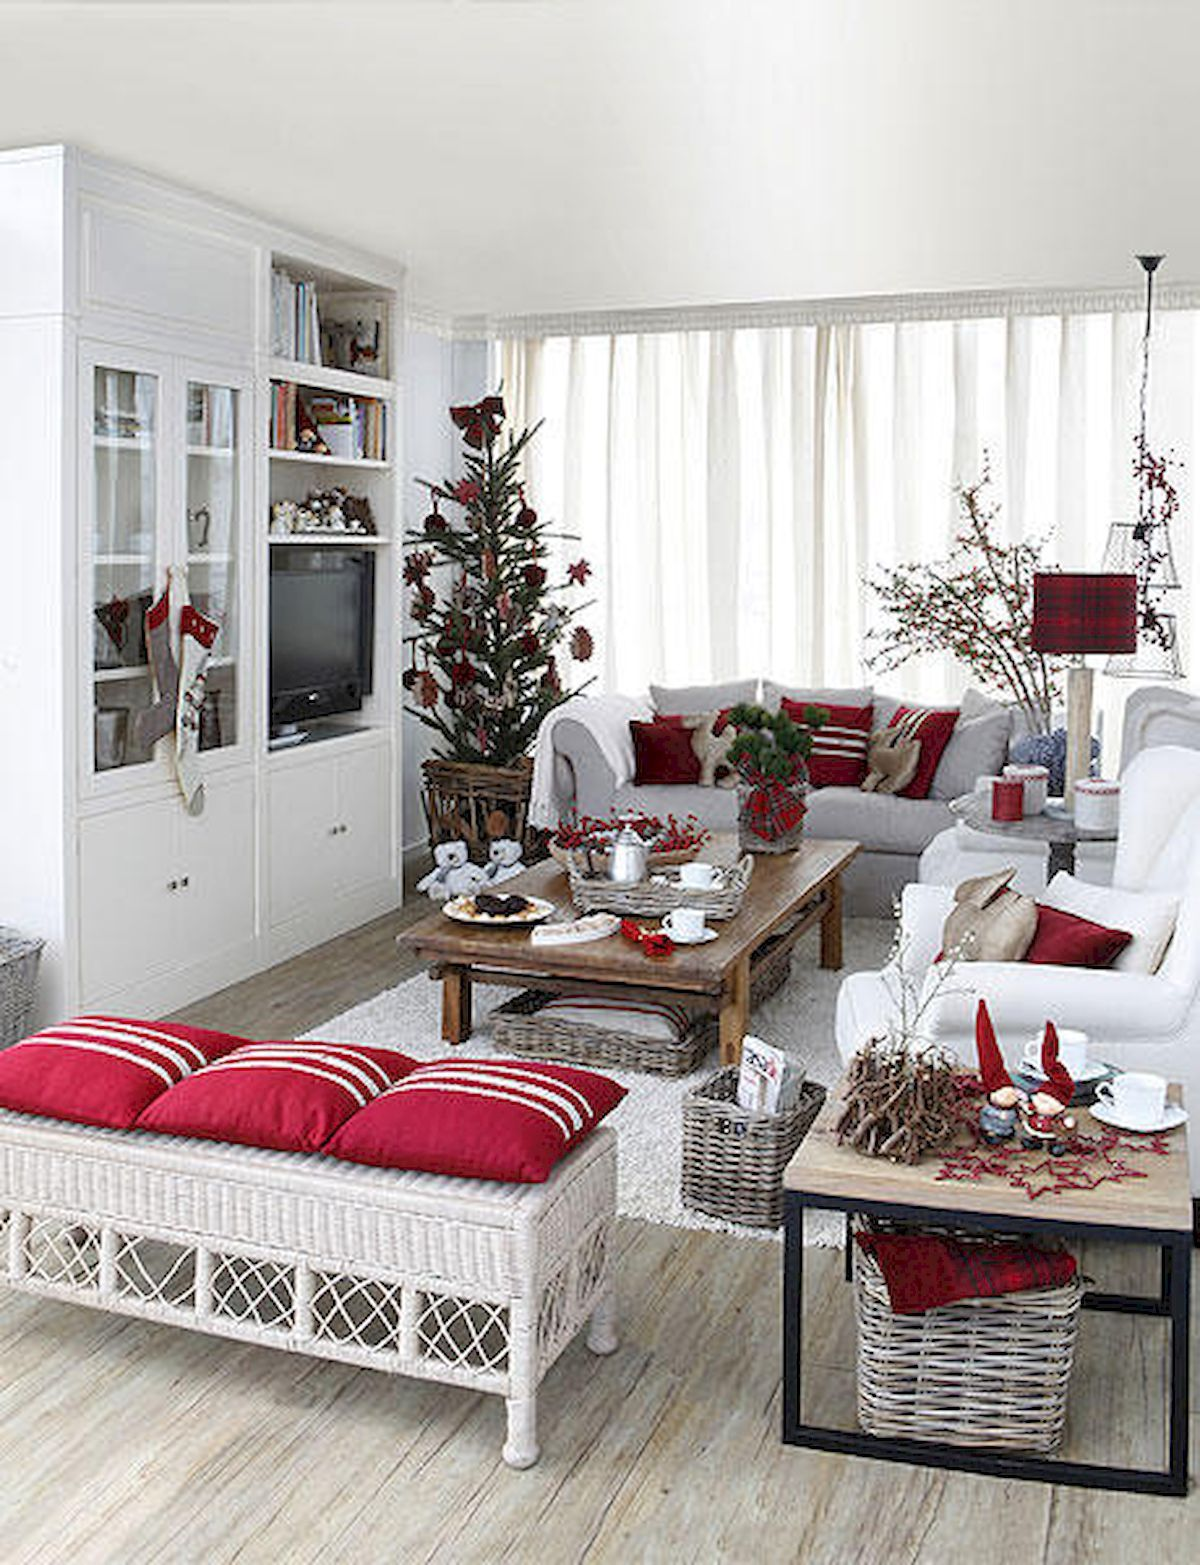 40 Cheap and Easy Christmas Decorations for Your Apartment